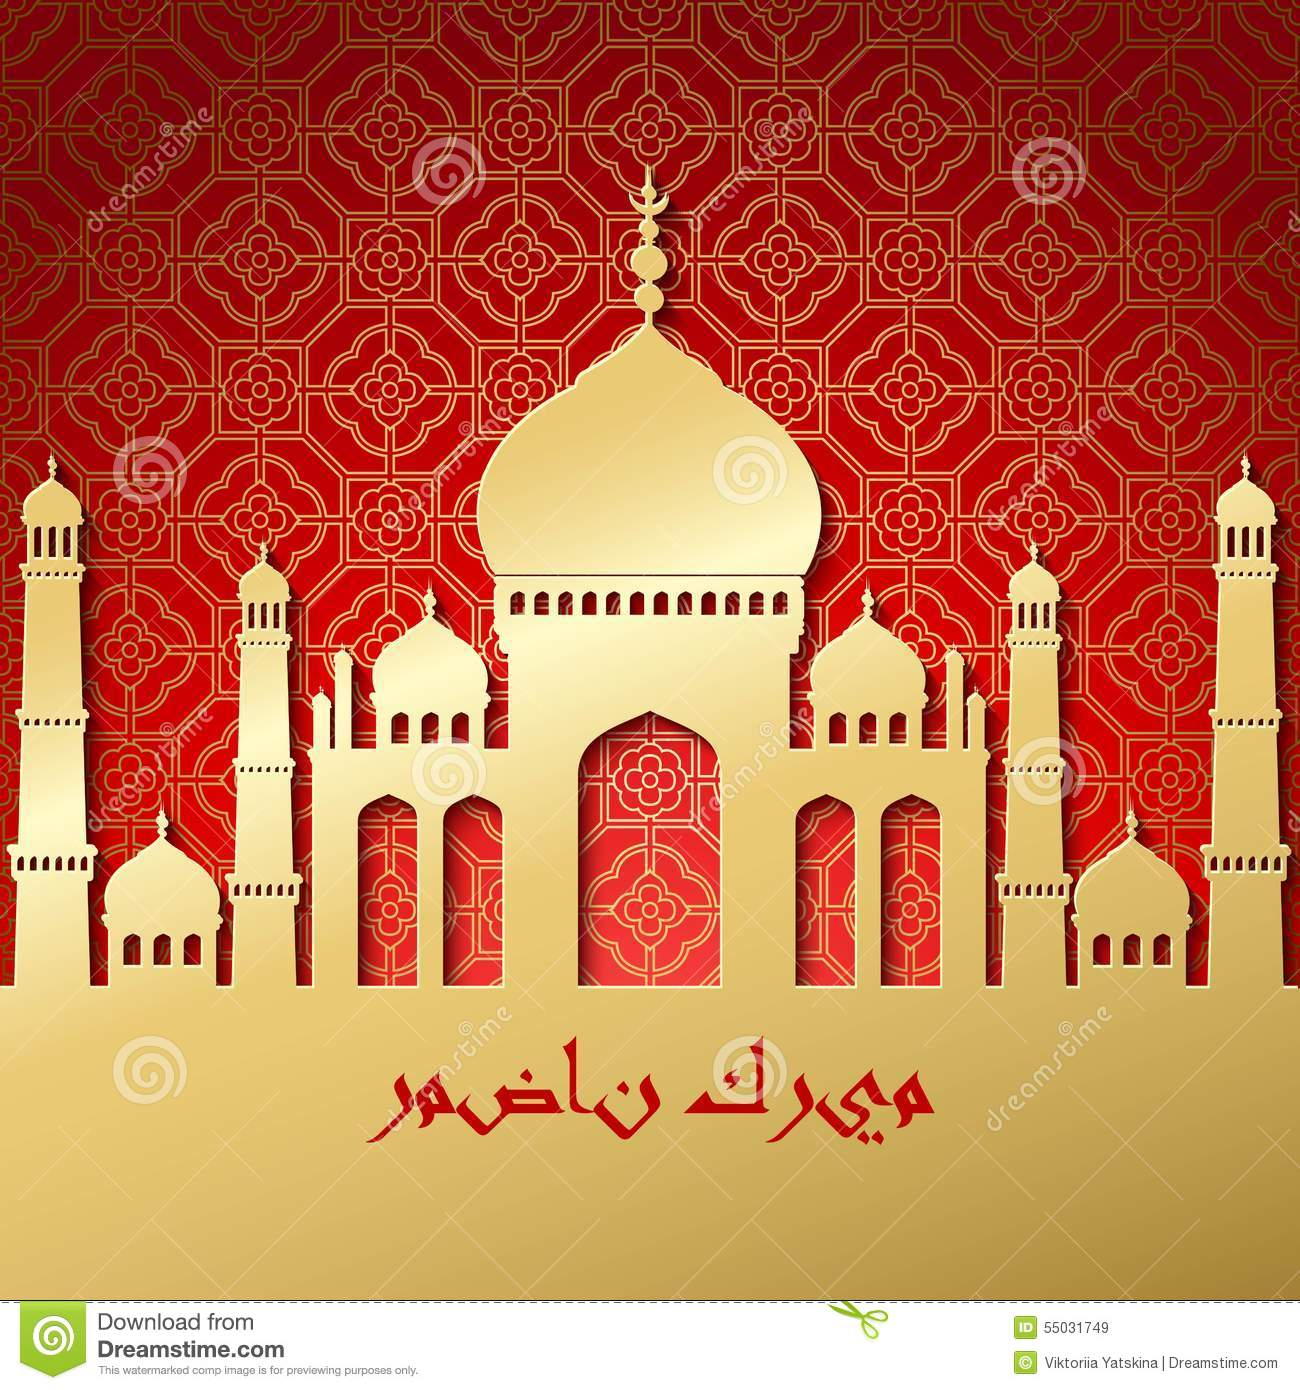 Ramadan greetings background ramadan kareem stock vector download ramadan greetings background ramadan kareem stock vector illustration of beautiful islamic m4hsunfo